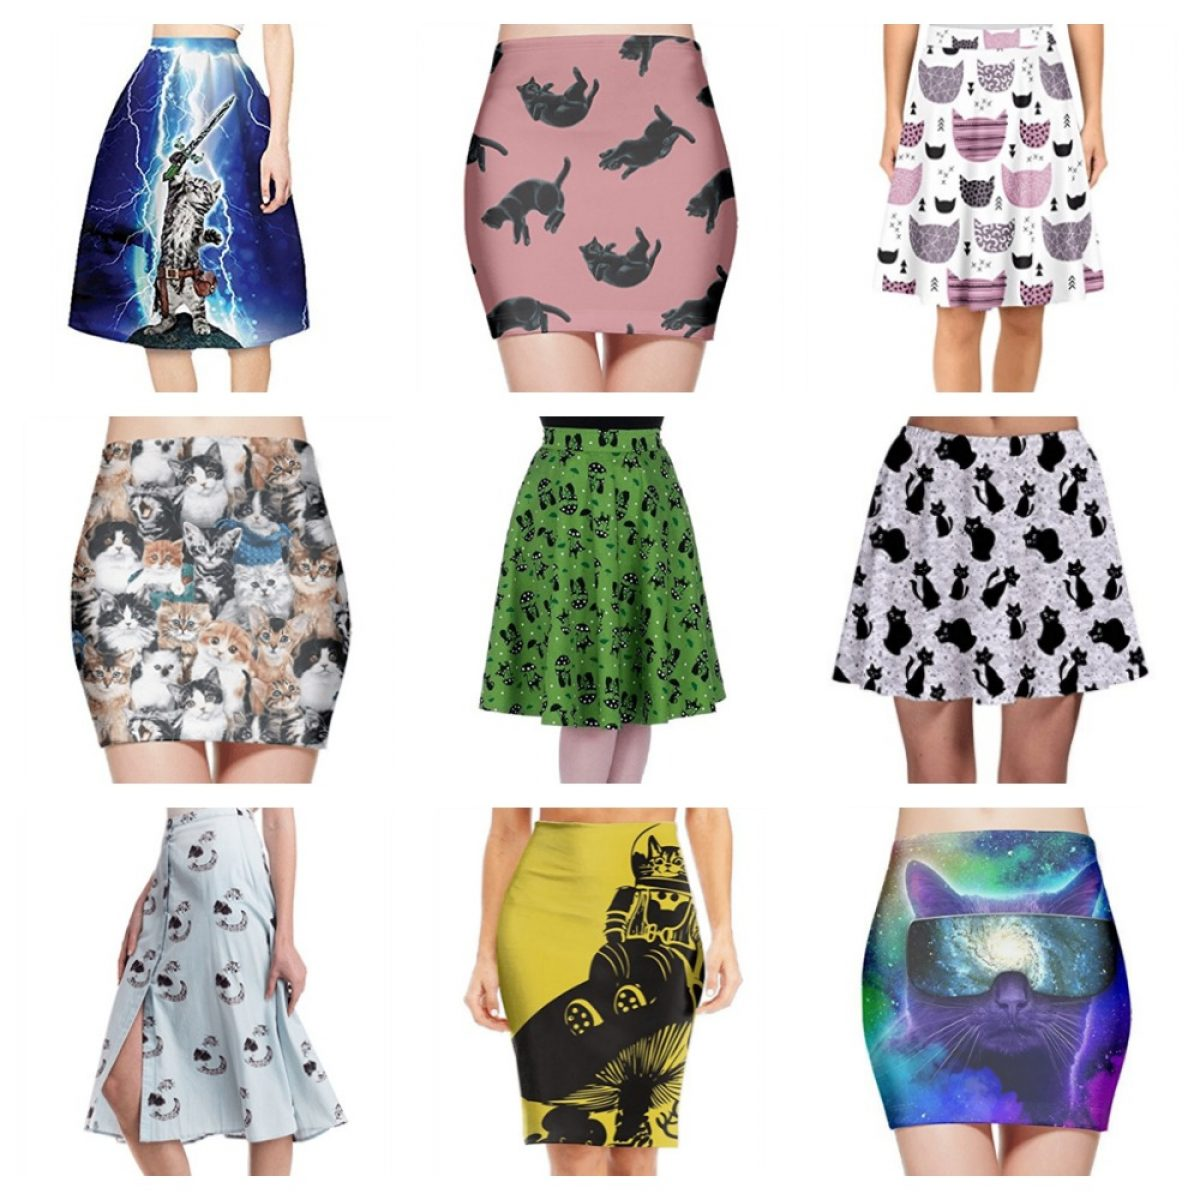 skater skirts is funky designs